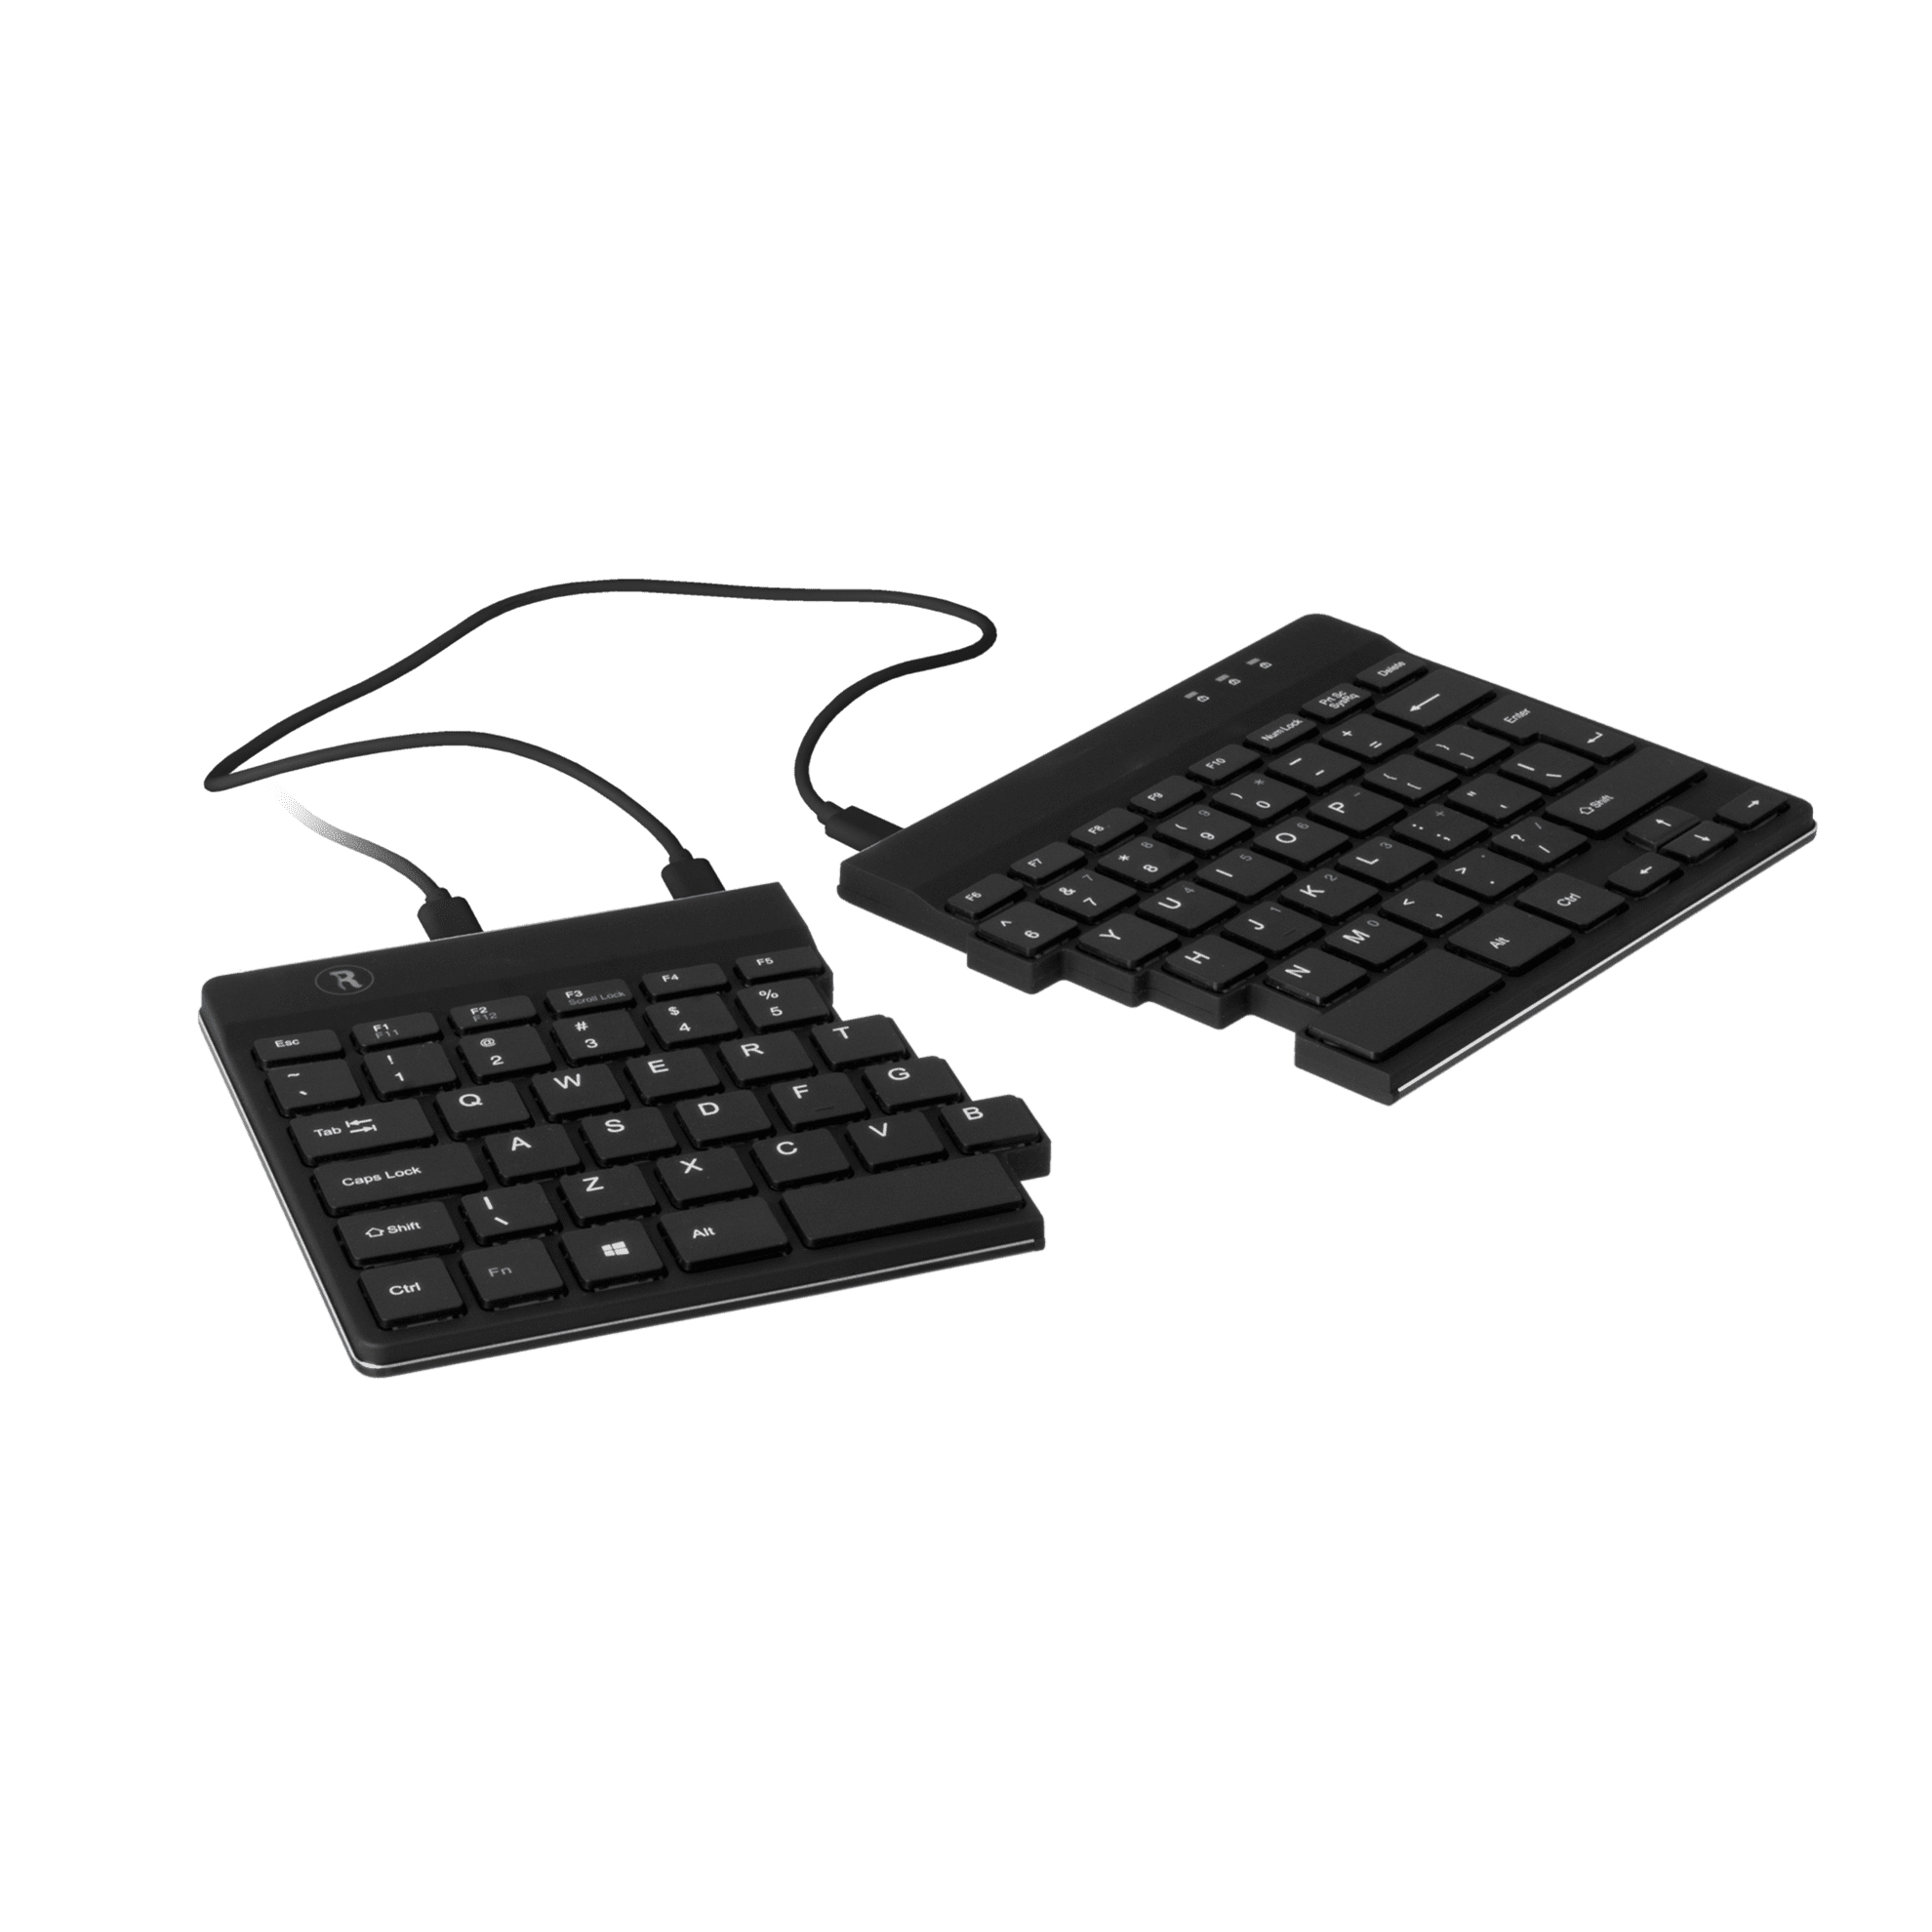 R-GO TOOLS RGOSP-NDWIBL SPLIT ERGONOMIC KEYBOARD, QWERTY (NORDIC), BLACK, WIRED